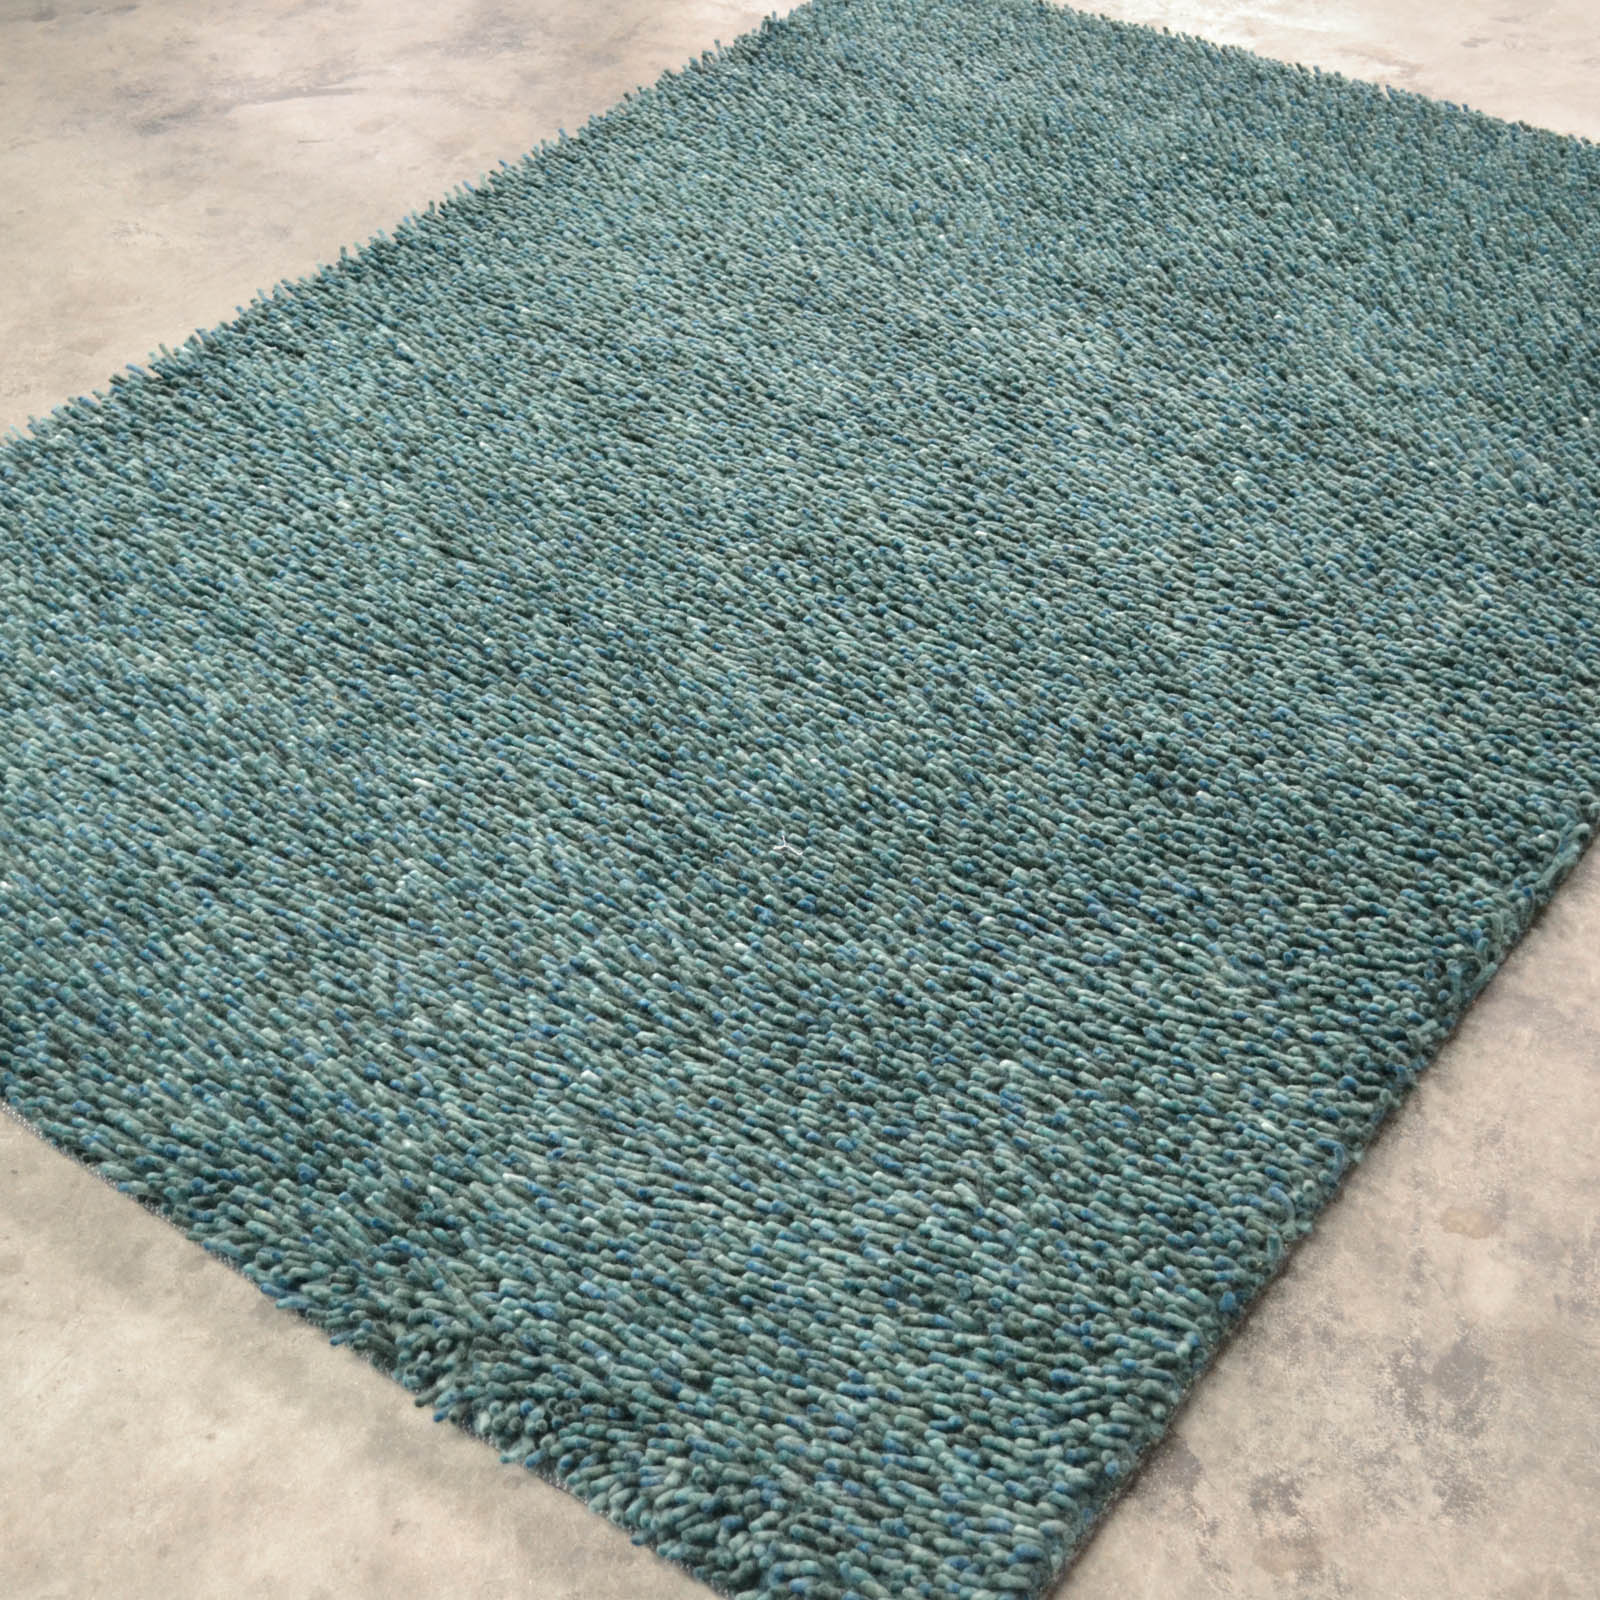 Steel Rugs 78907 Green Blue by Brink and Campman